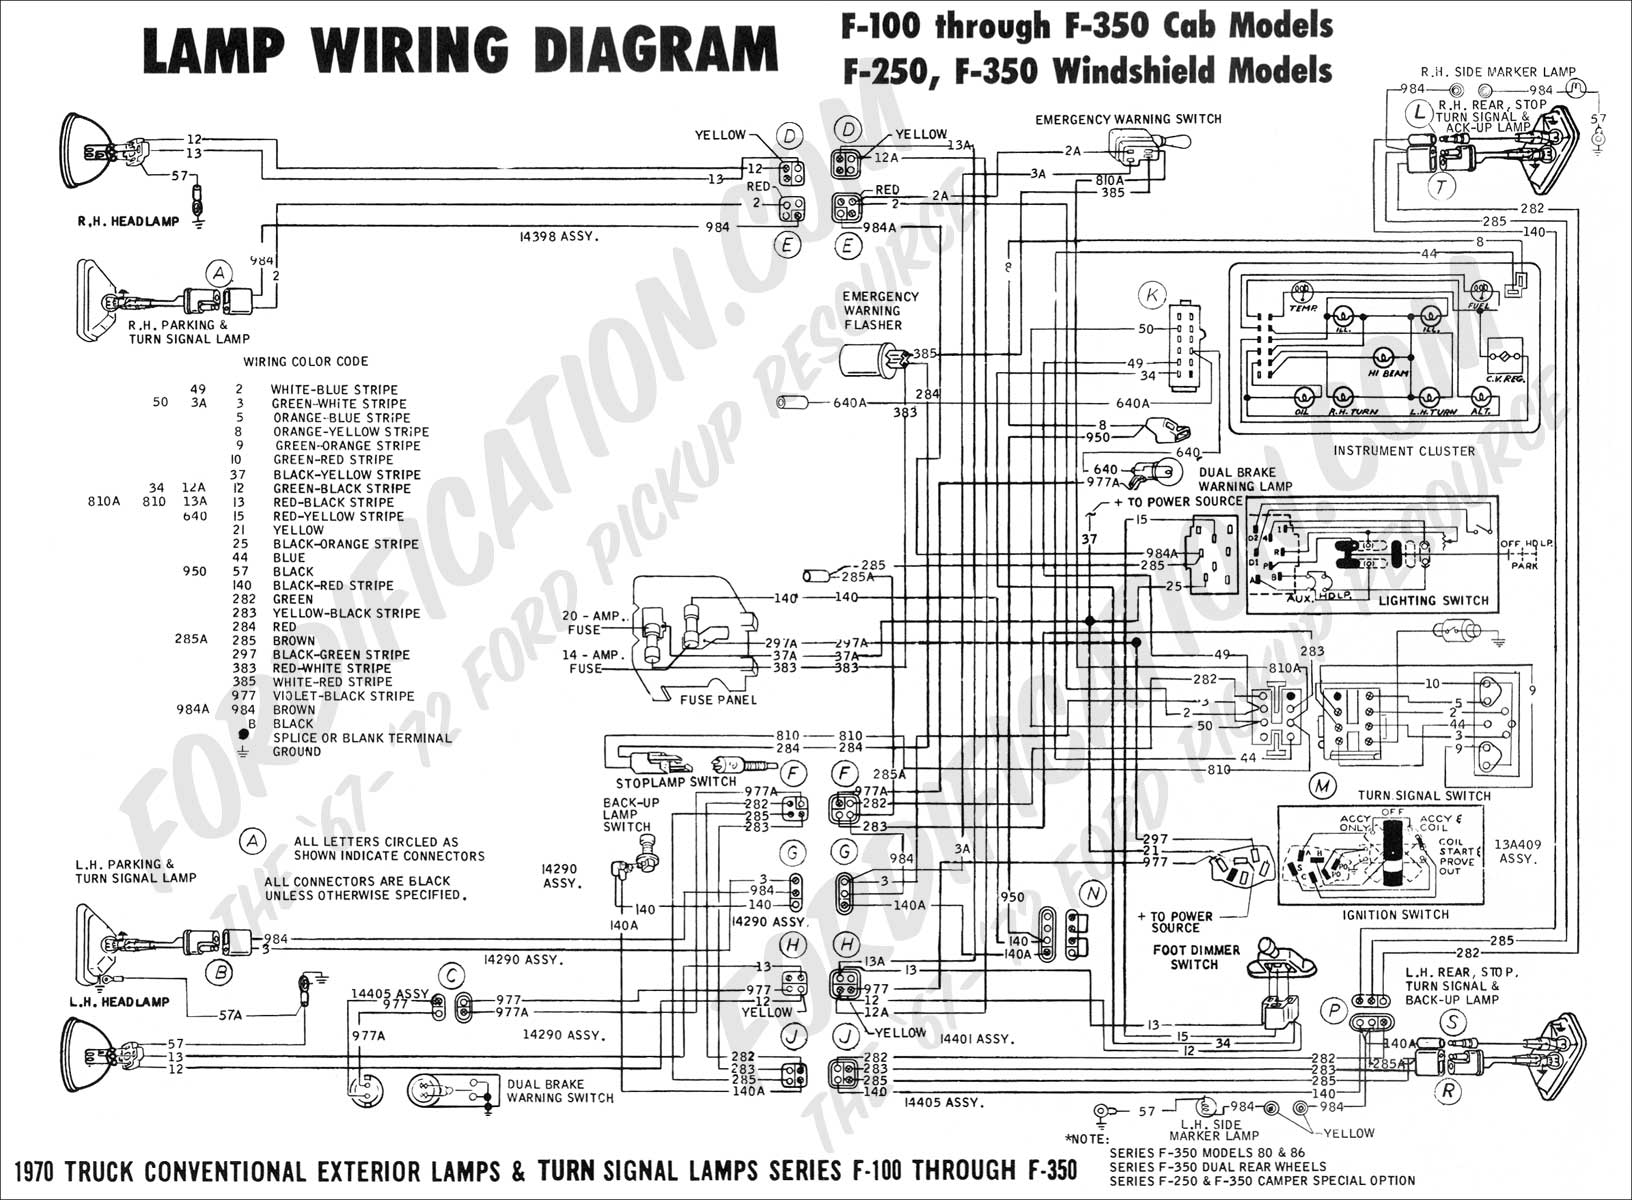 wiring diagram_70ext lights01 ford truck technical drawings and schematics section h wiring 1970 ford wiring diagram at soozxer.org